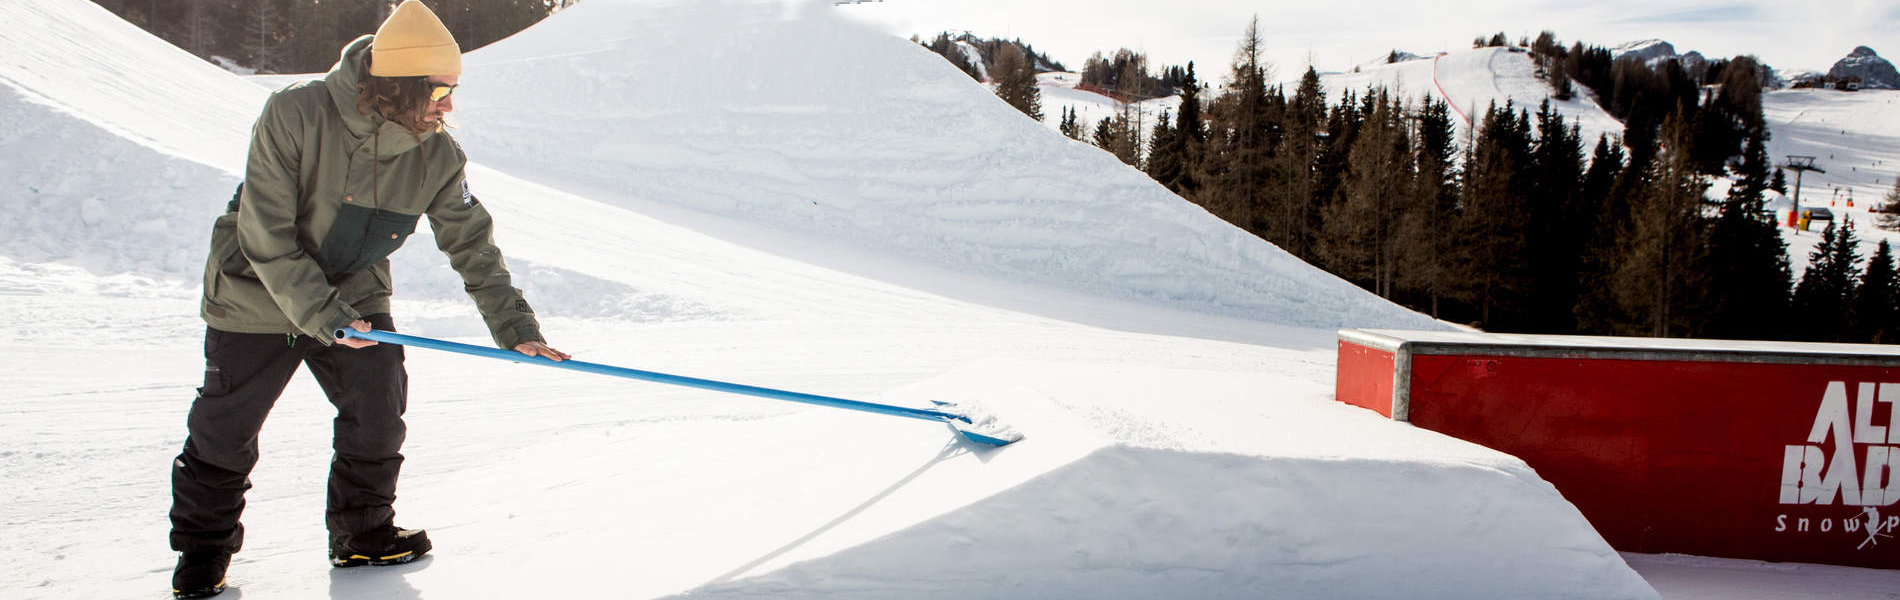 First Line ready – Your setup for the weekend at Alta Badia